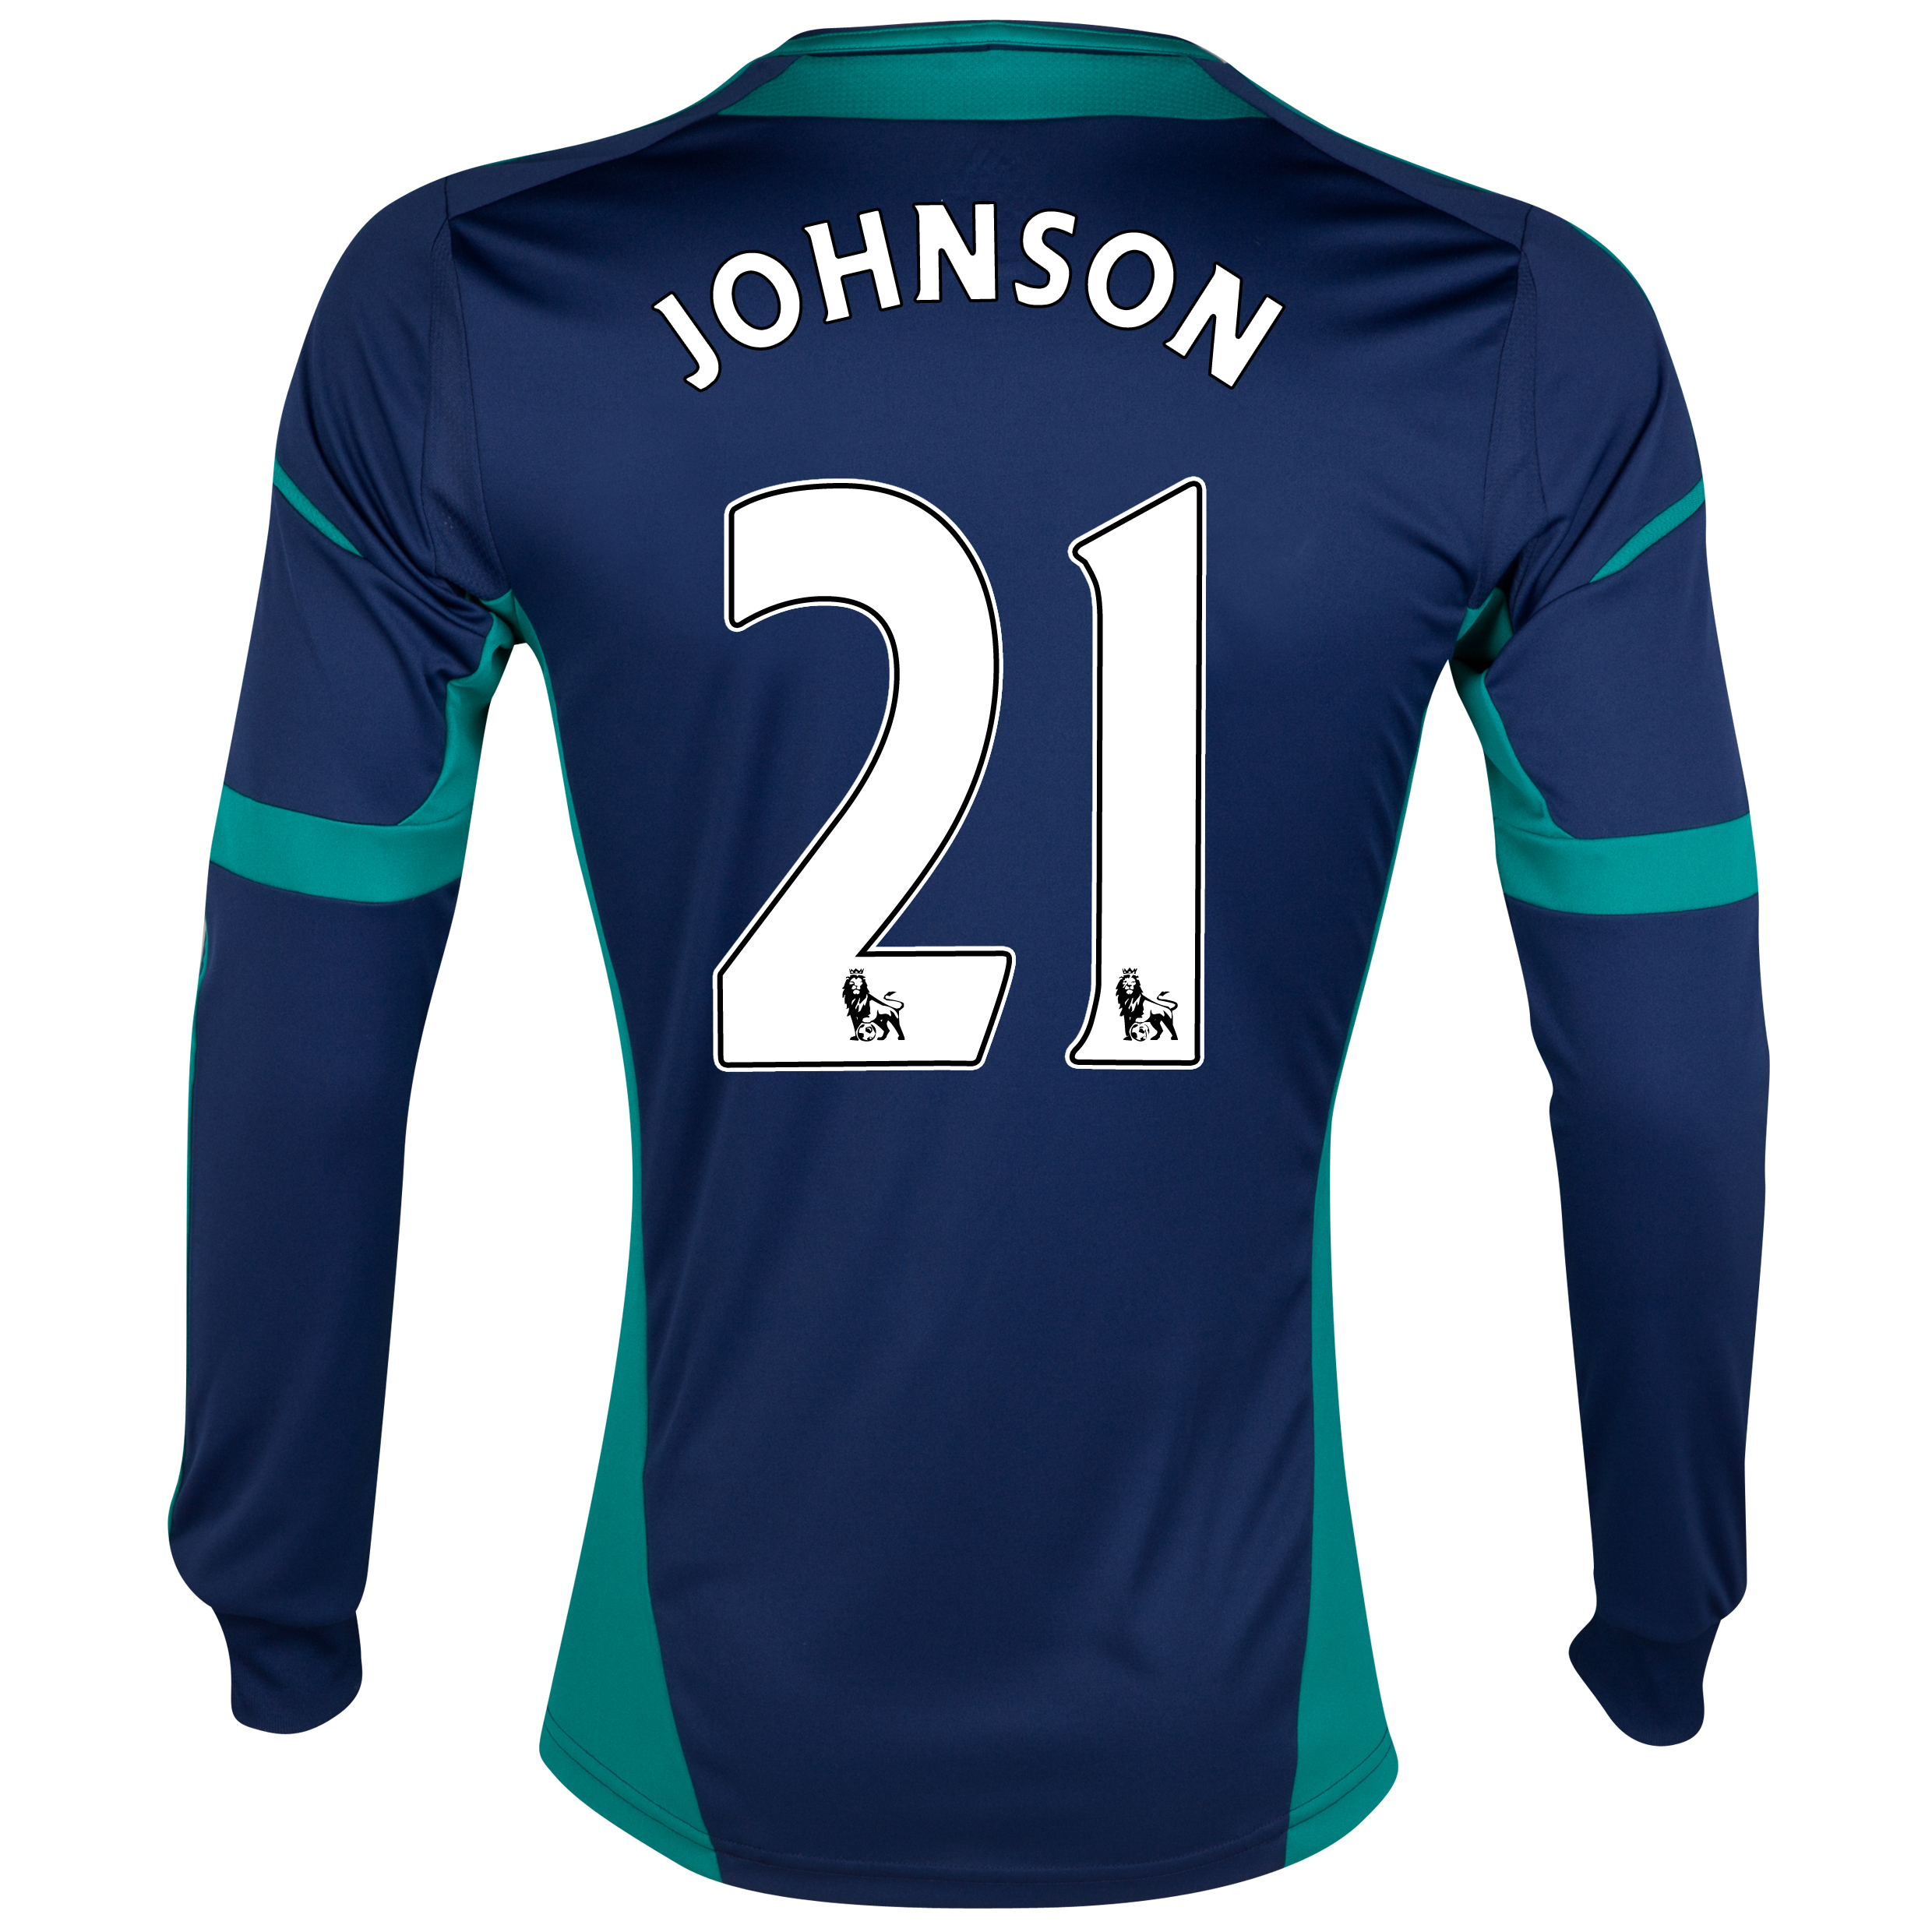 Sunderland Away Shirt 2012/13 - Long Sleeved - Junior with Johnson 21 printing